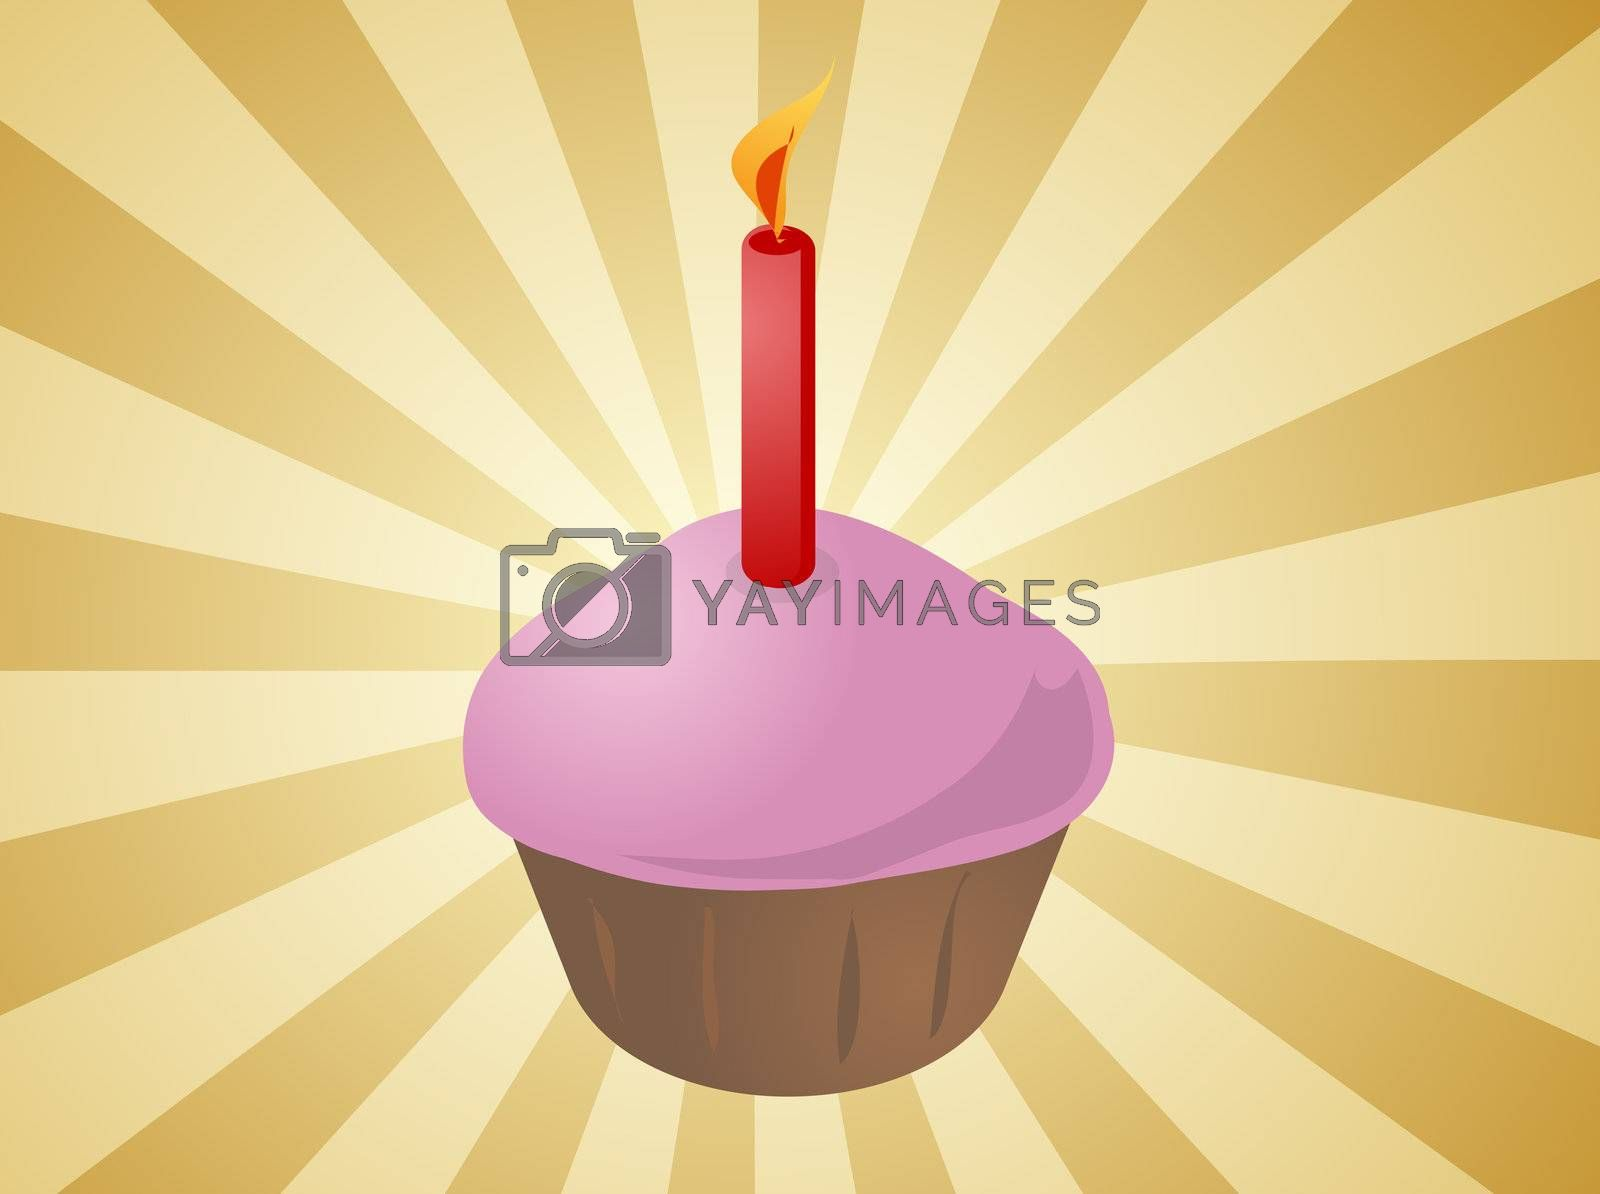 Royalty free image of Birthday cupcake with candle by kgtoh